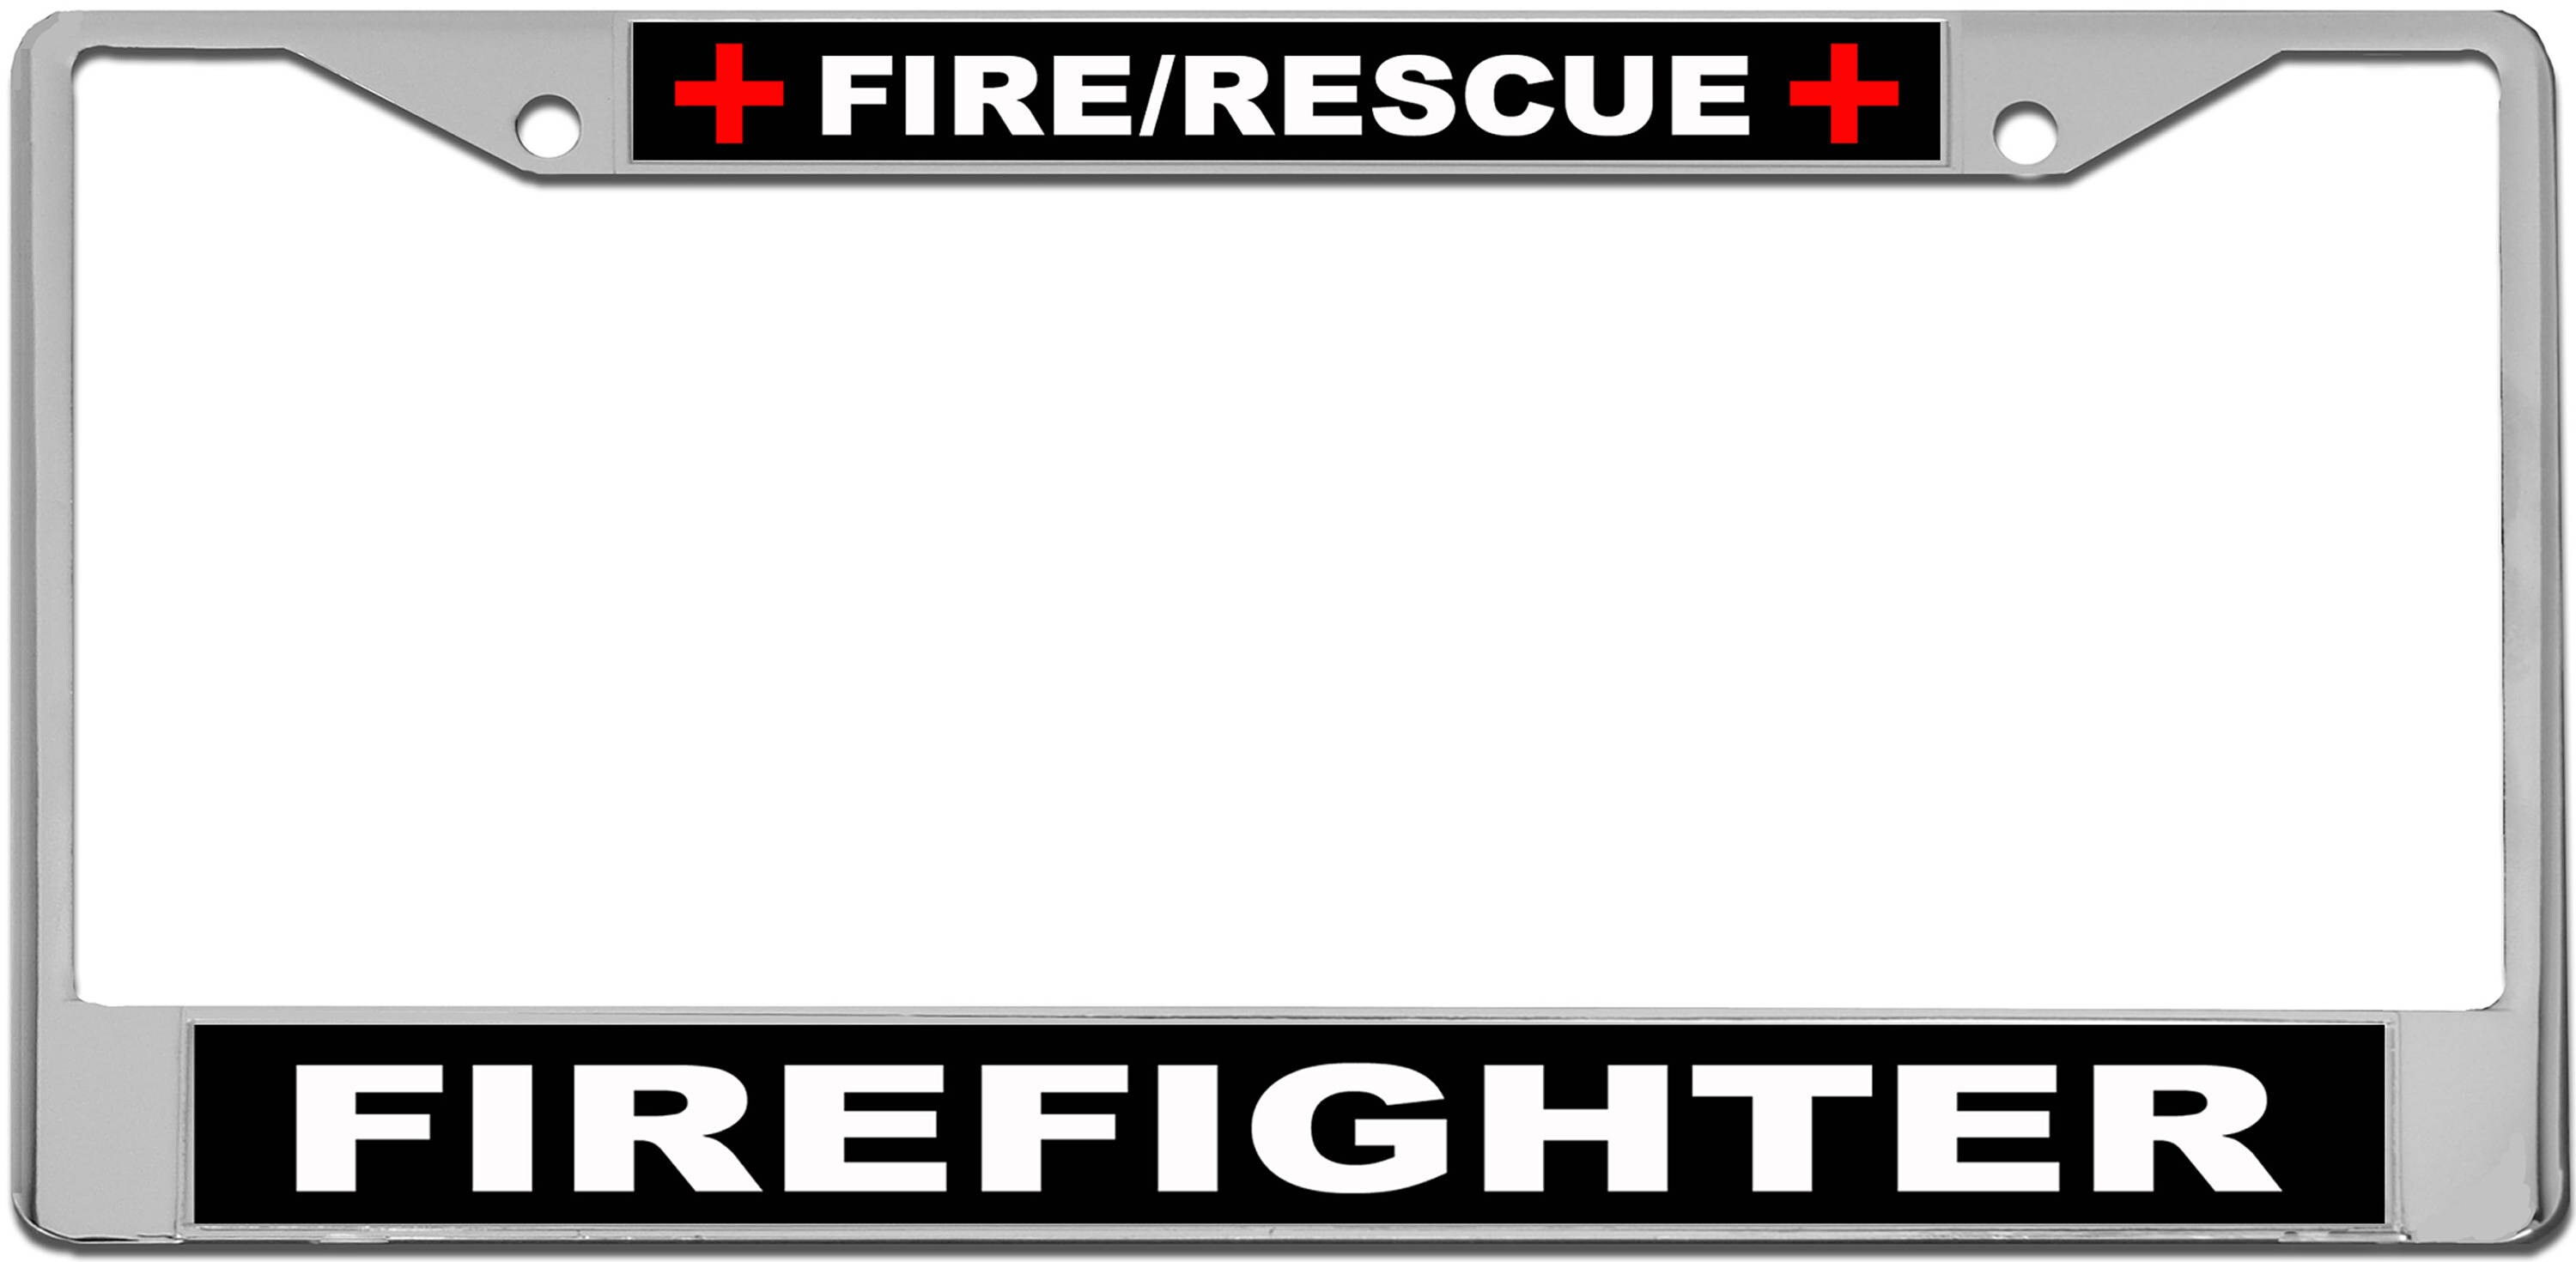 Fire & Rescue Firefighter License Plate Frame | Etsy